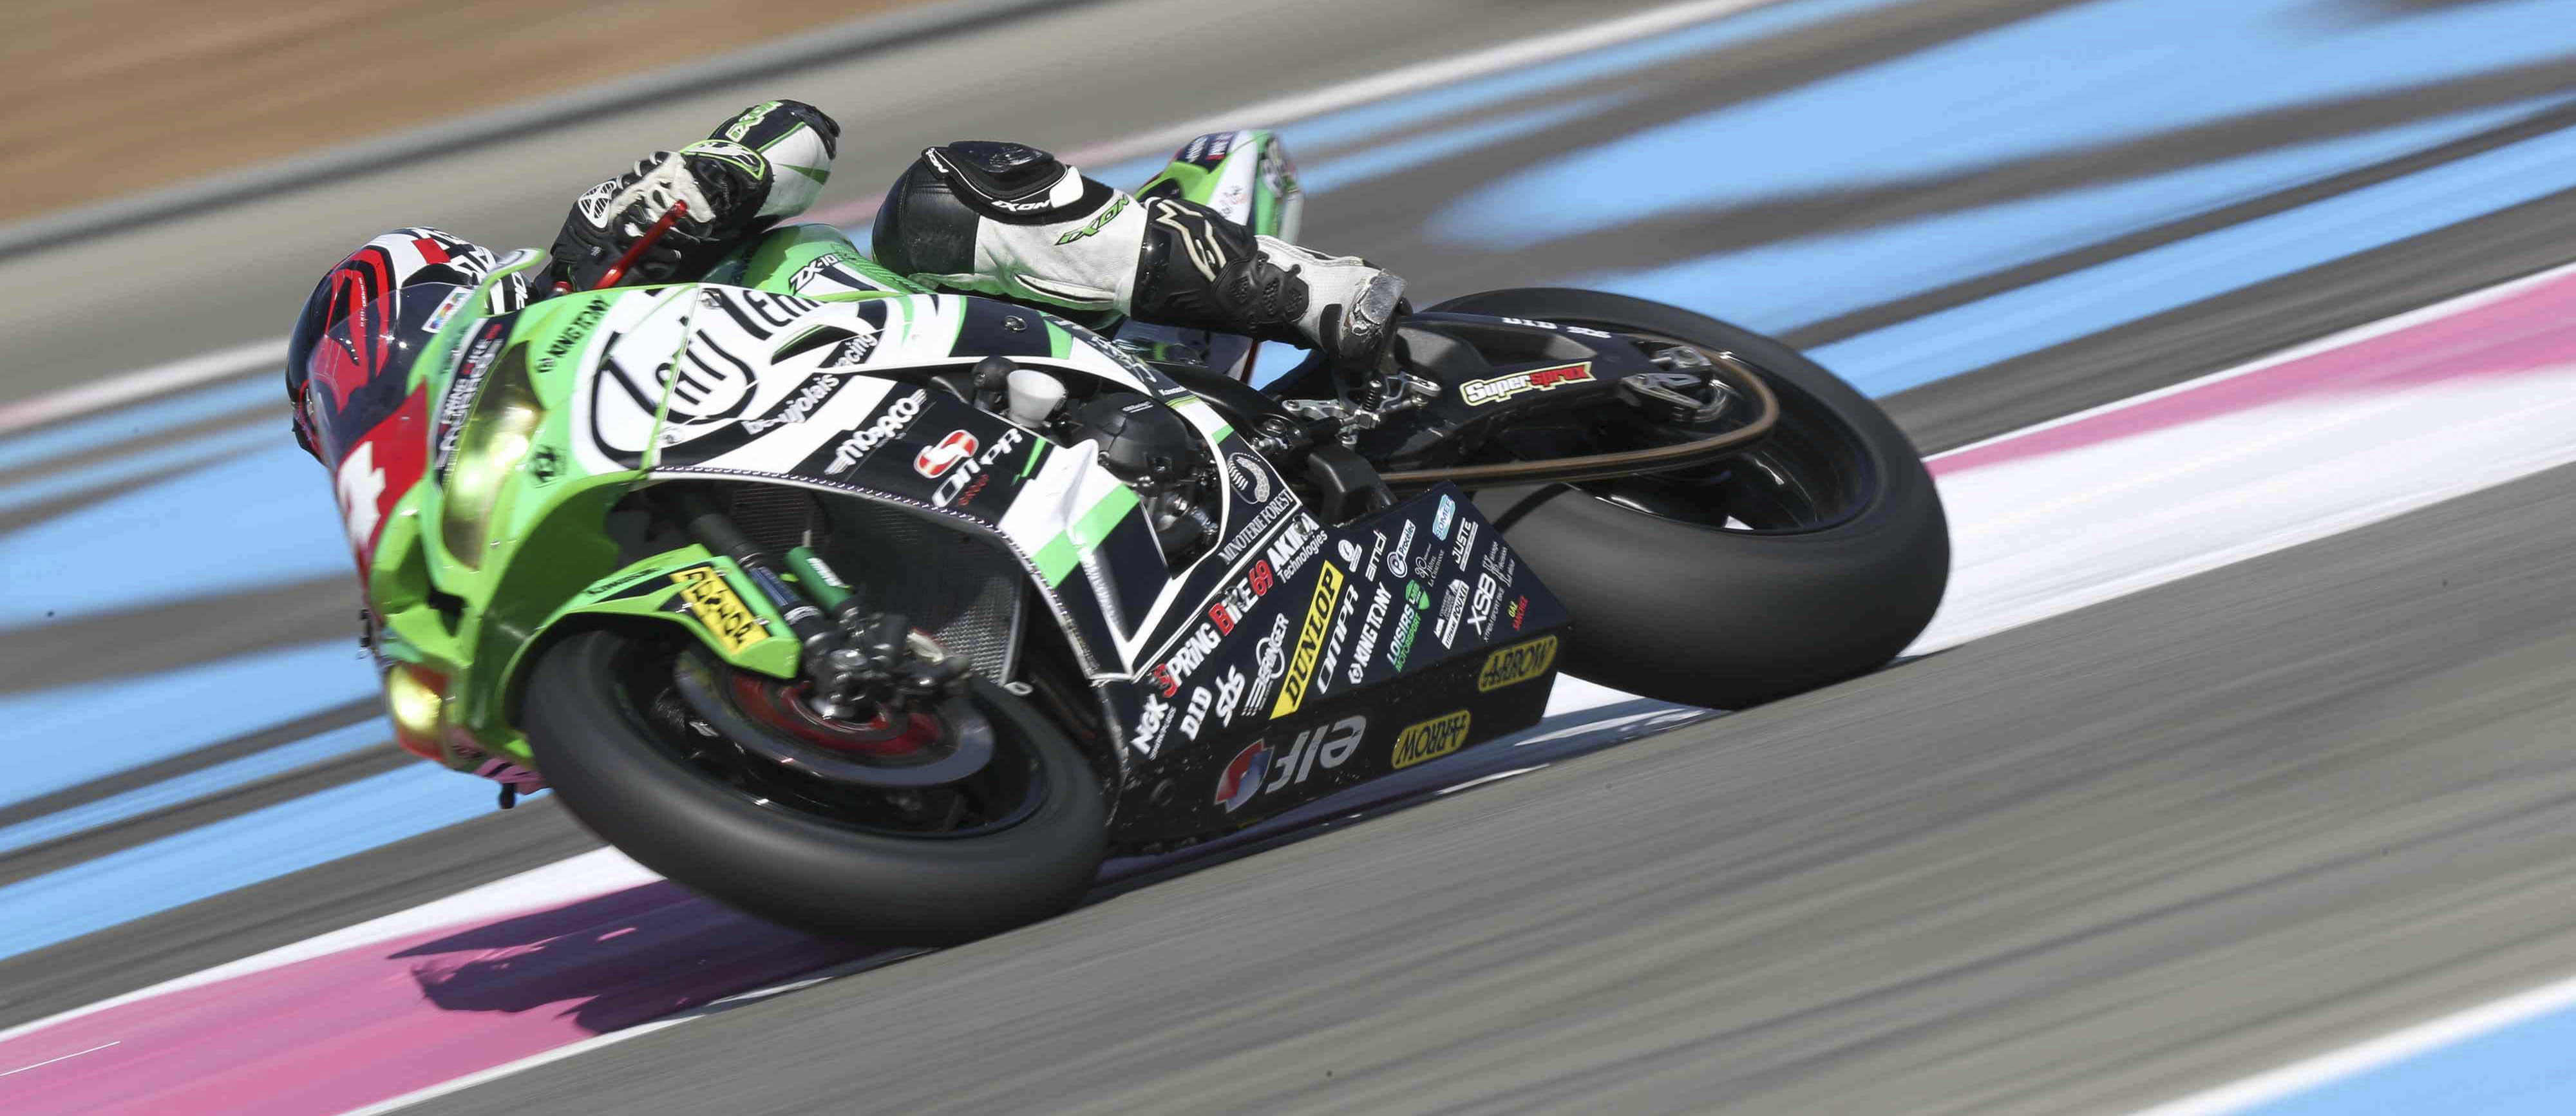 Tati Team Beaujolais Racing dominating Superstock class